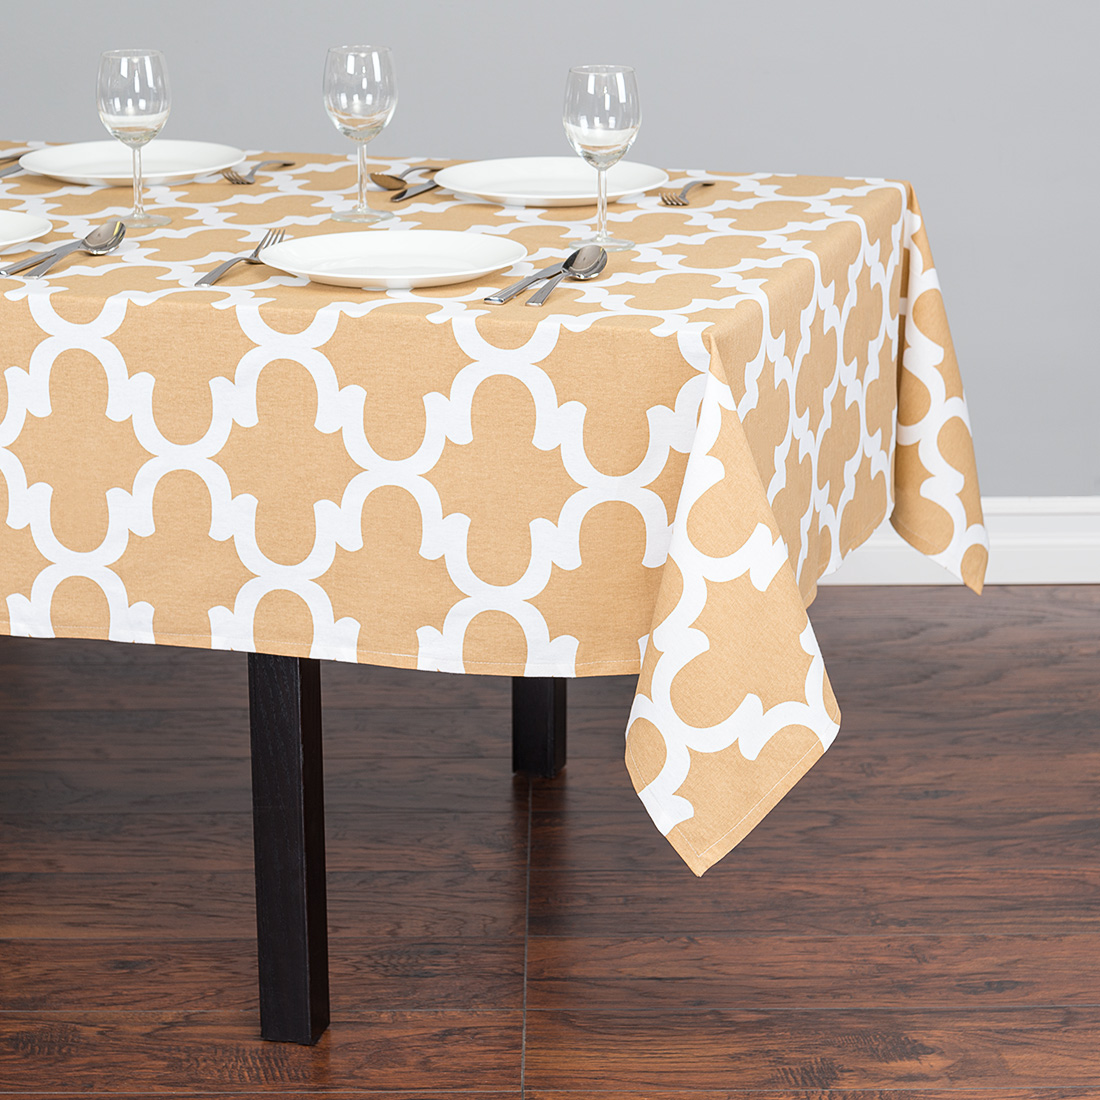 60 x 84 in. Trellis Rectangular Cotton Tablecloth Latte & White by